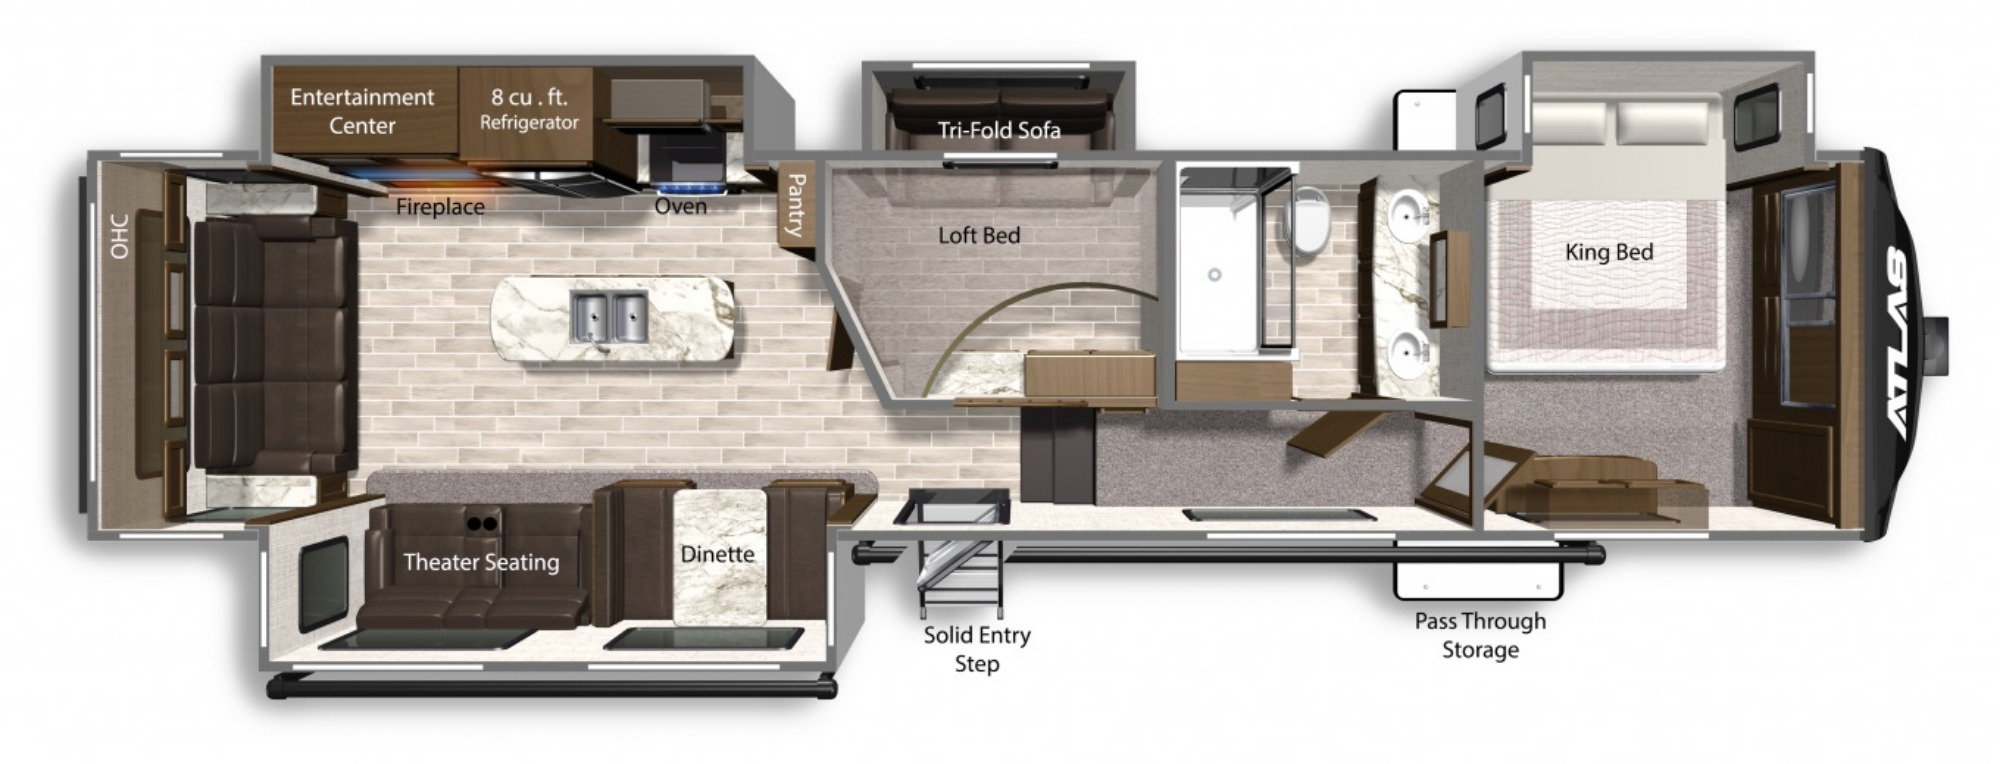 Floor Plan image for '2021 DUTCHMEN ATLAS 3552MBKB'